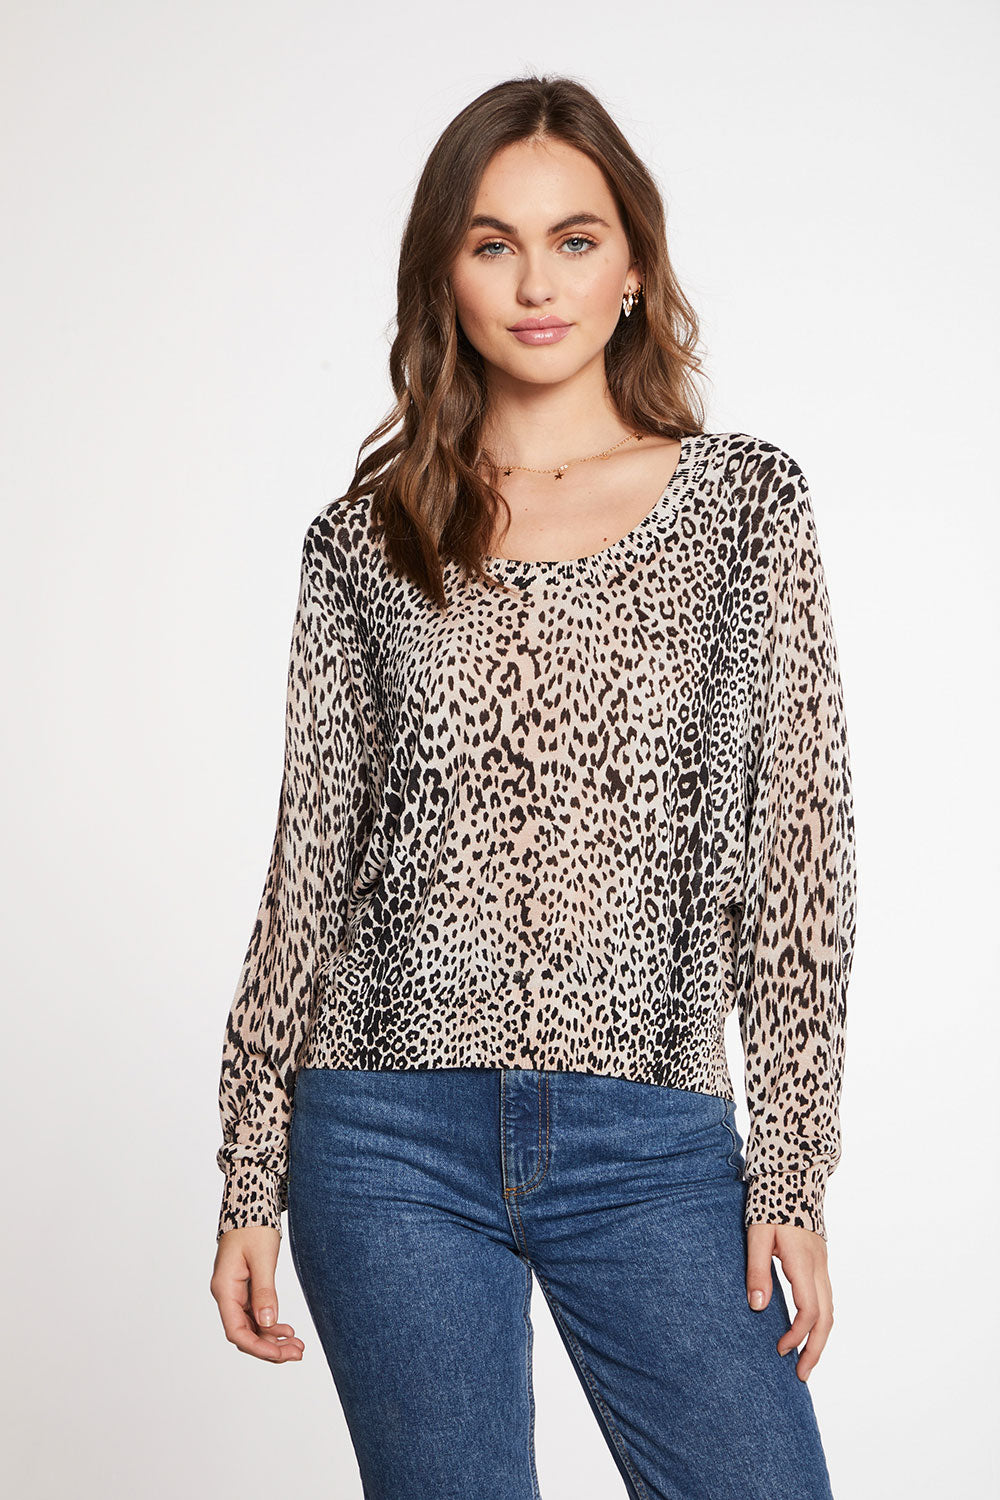 Viscose Blend Micro Animal Print Oversized Long Sleeve Raglan Pullover Sweater WOMENS - chaserbrand